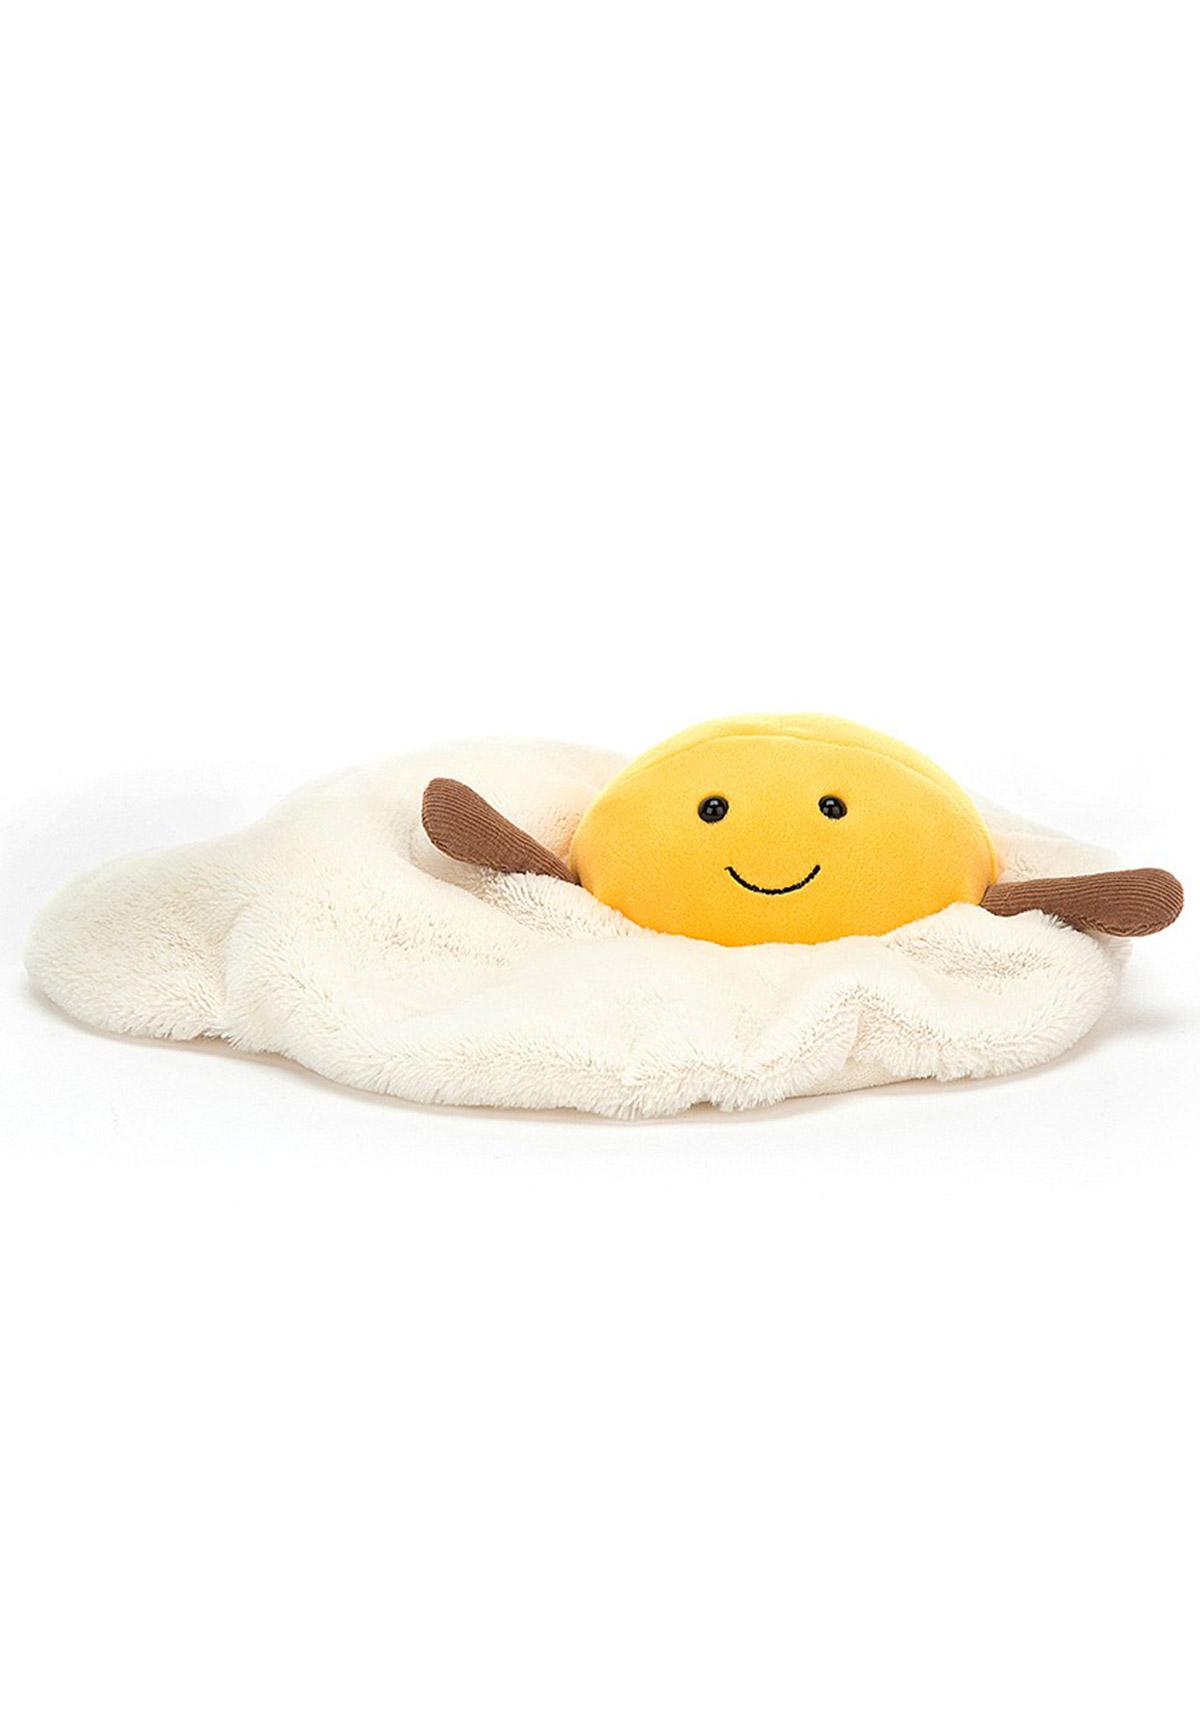 Jellycat Amusable Fried Egg